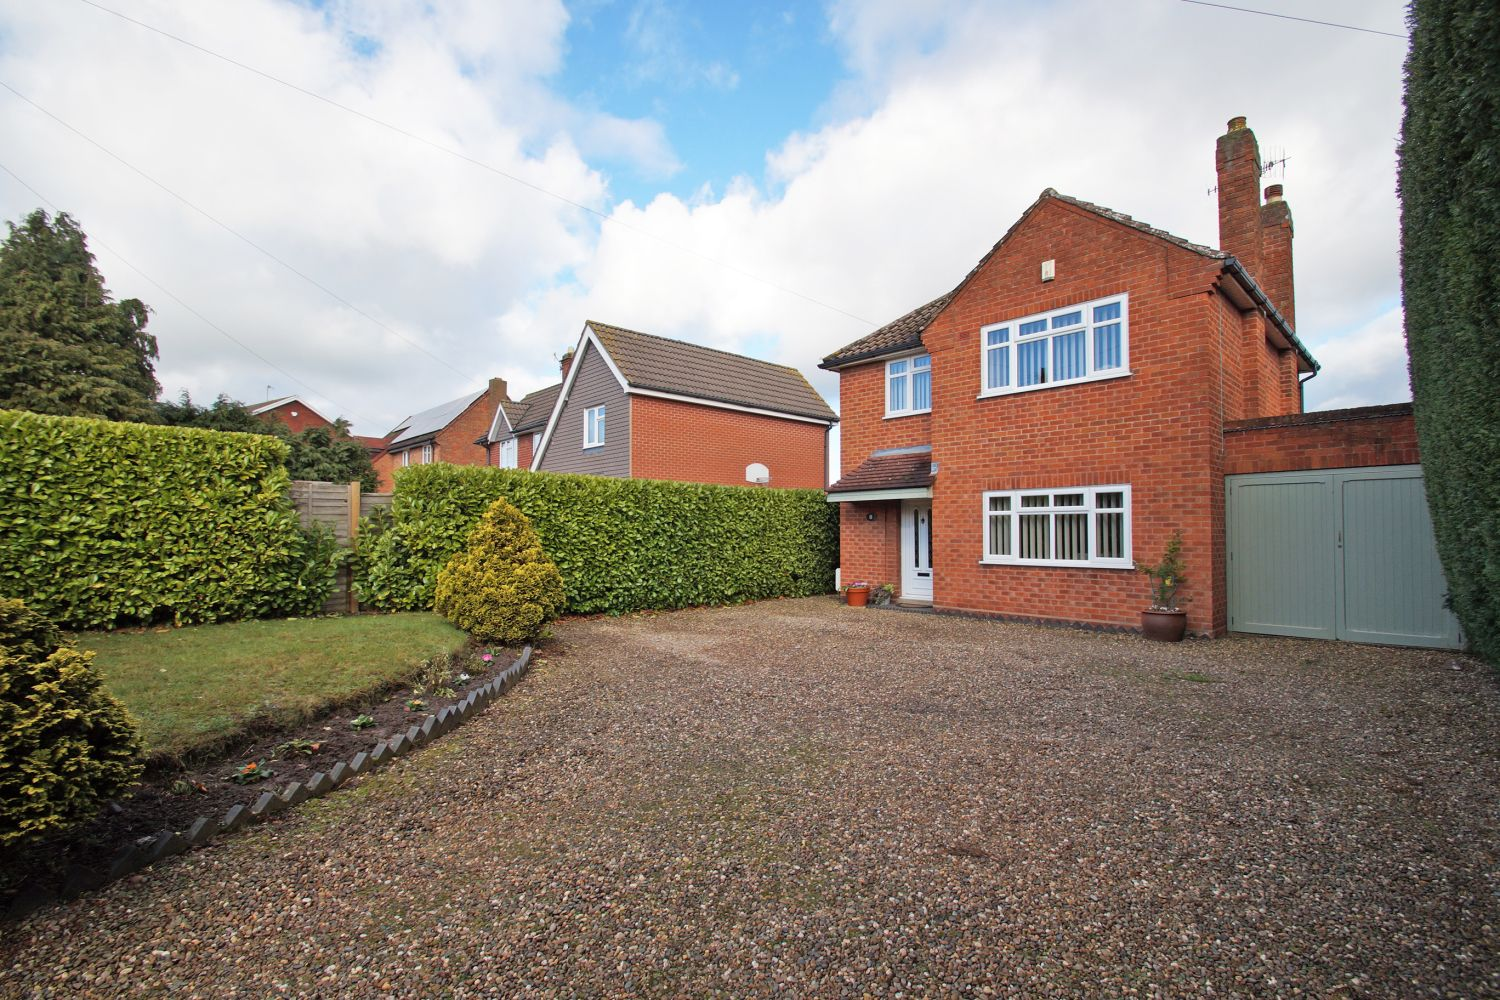 3 bed detached for sale in Fox Lane, Bromsgrove  - Property Image 2